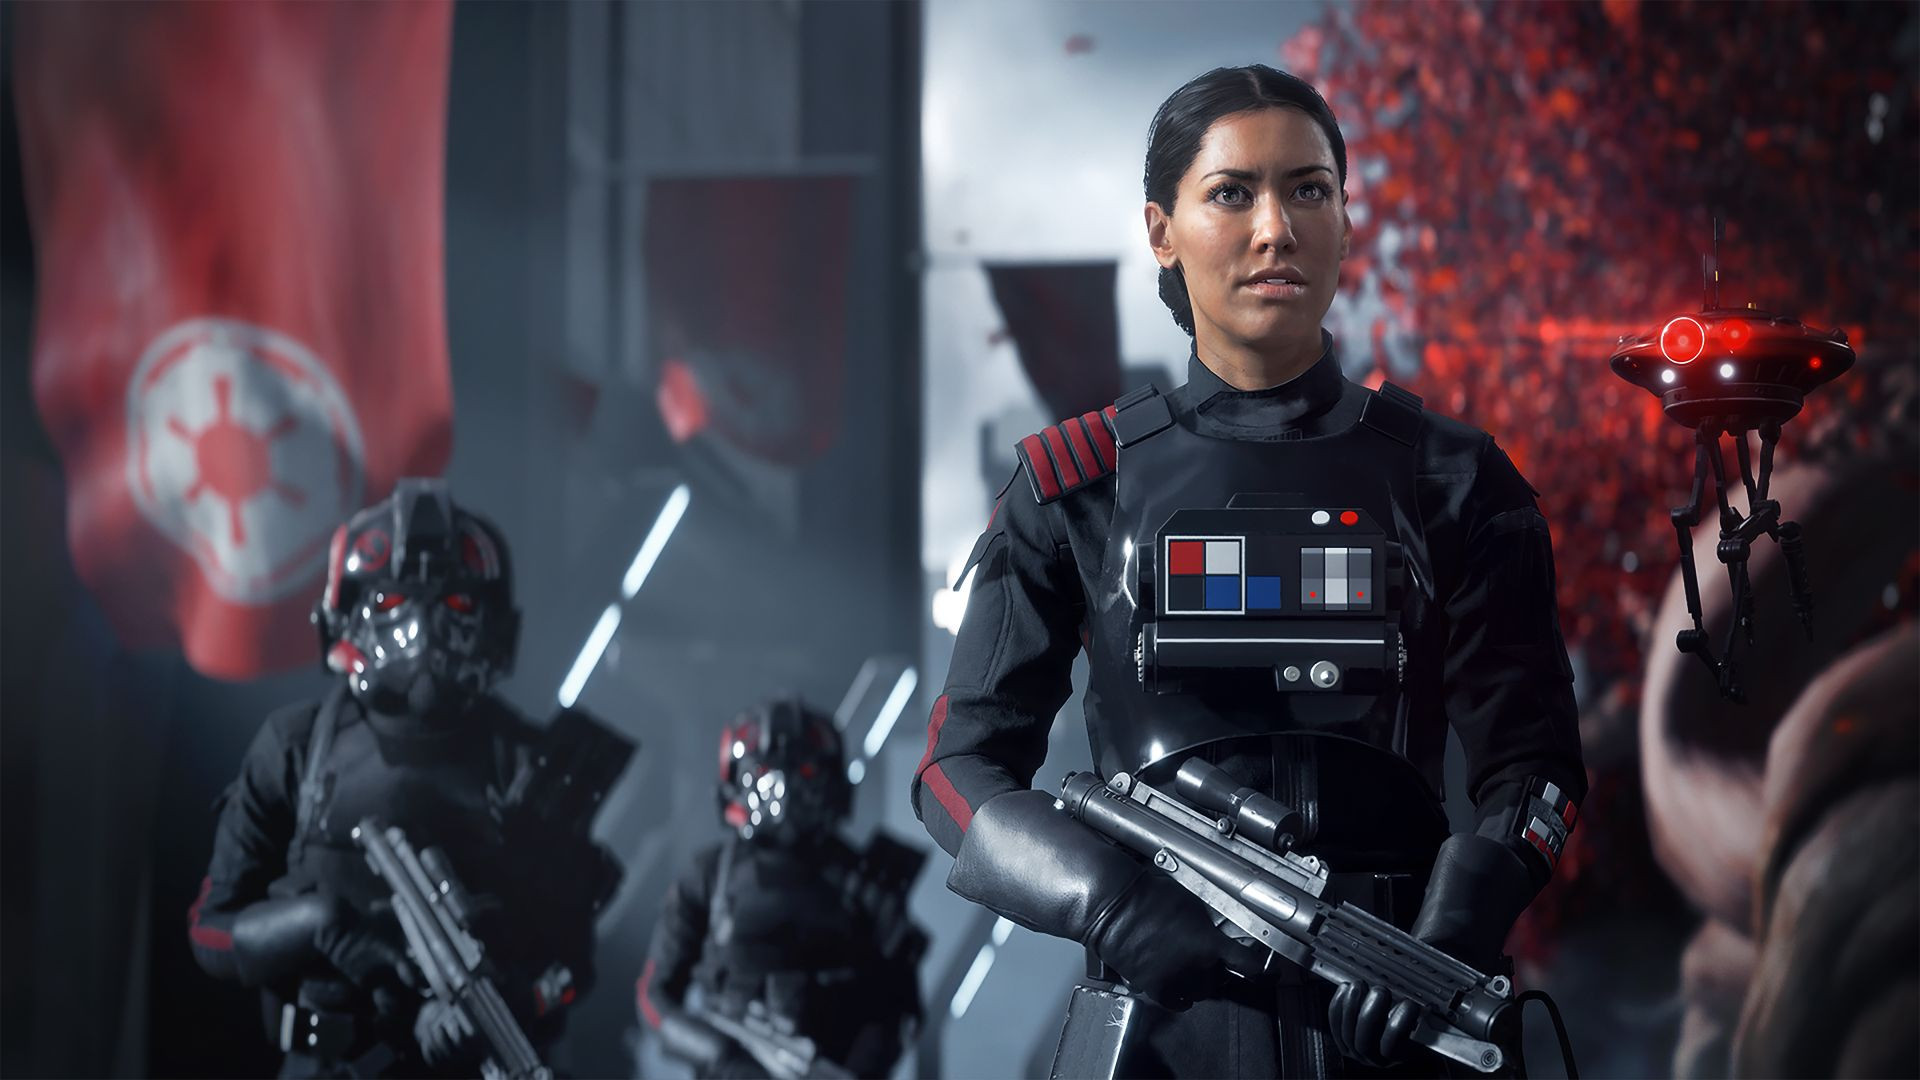 Photo of Star Wars: Battlefront 2 Patch 1.0 Available, Adds New Heroes & Campaign